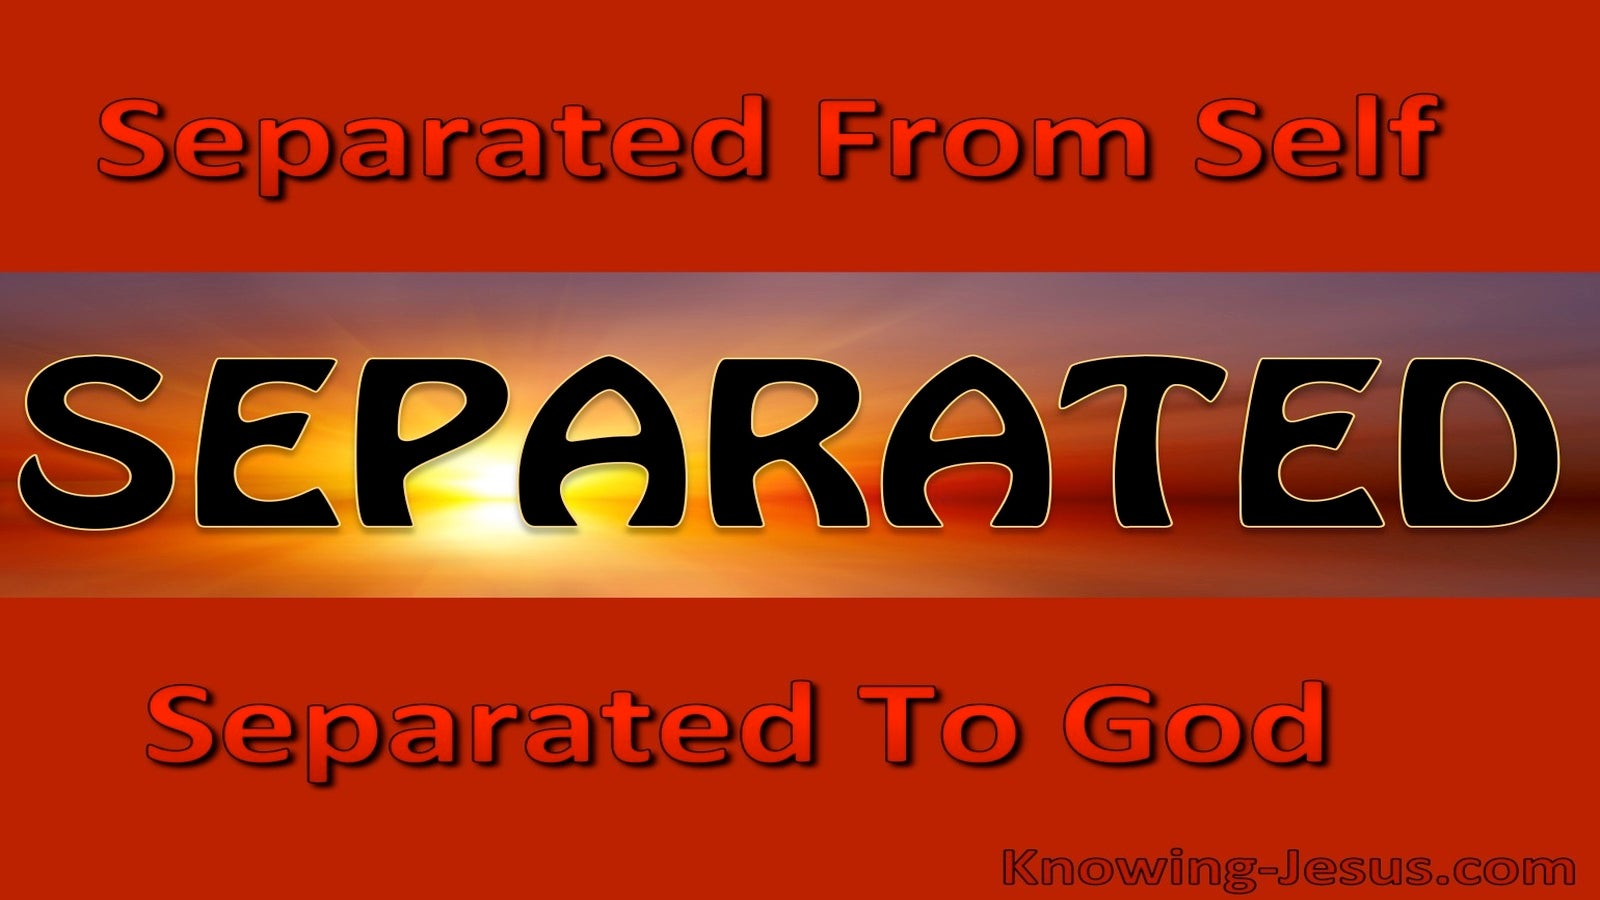 Separated From Self To God (devotional)  (red) - Romans 1:1